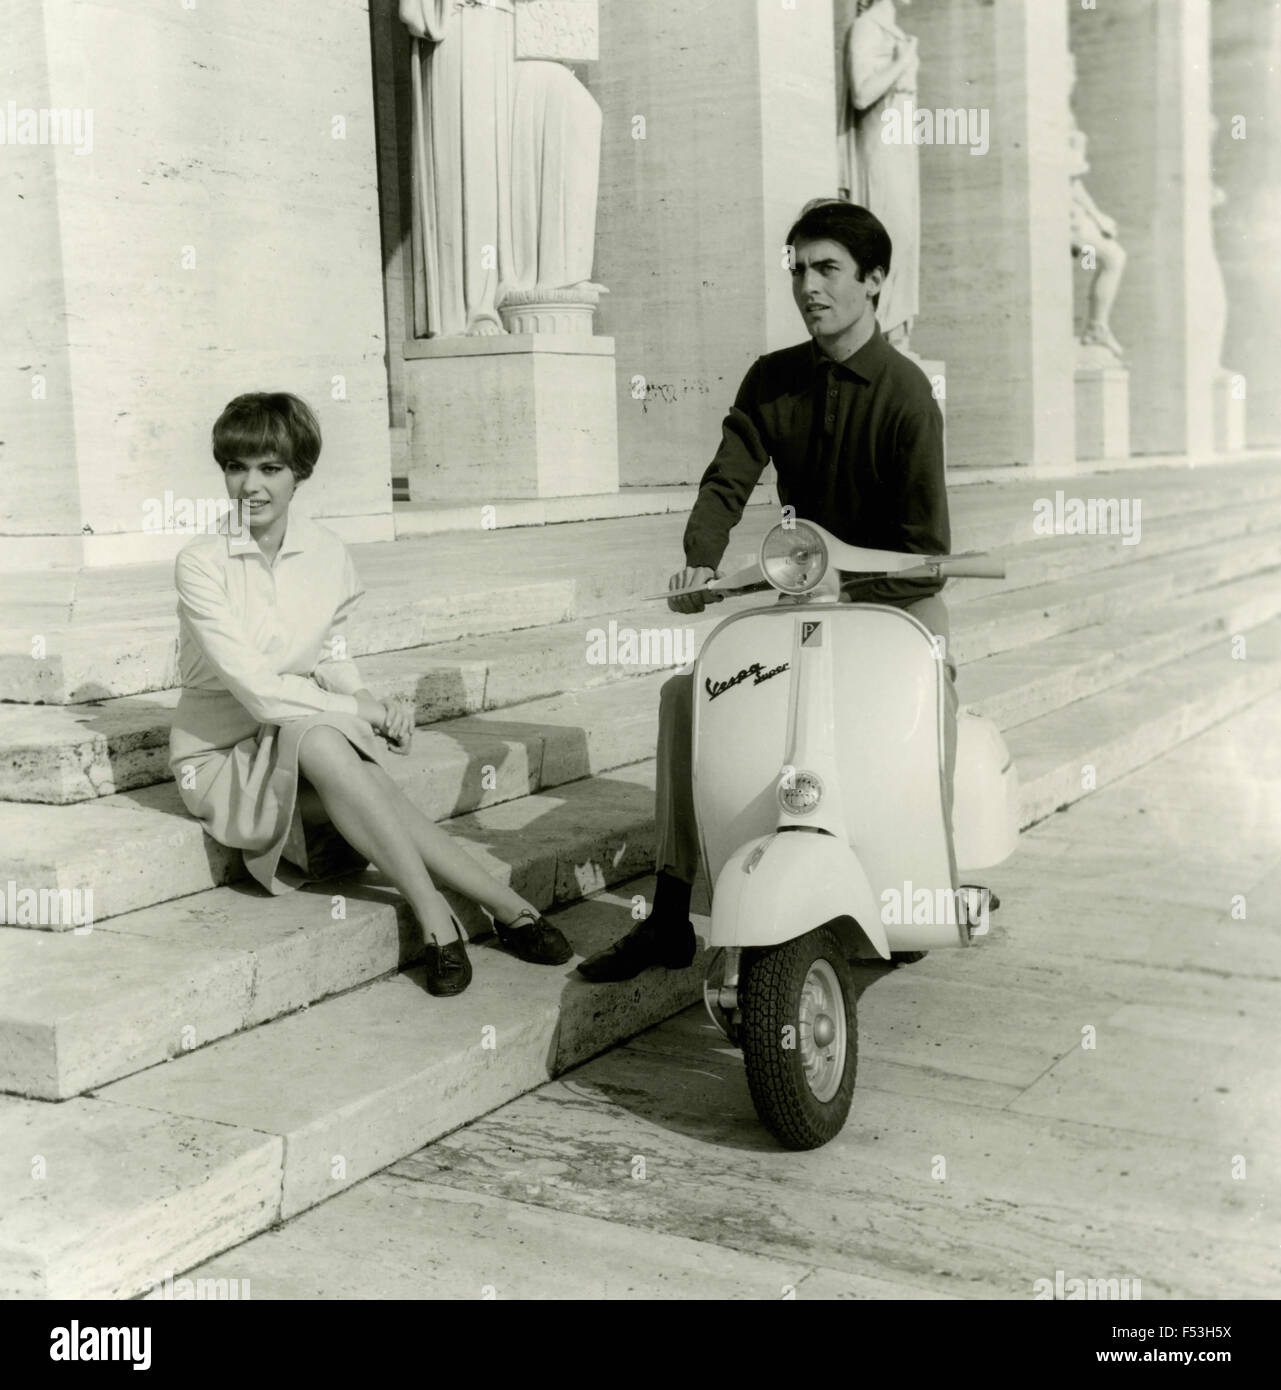 Where To Buy A Vespa In Italy